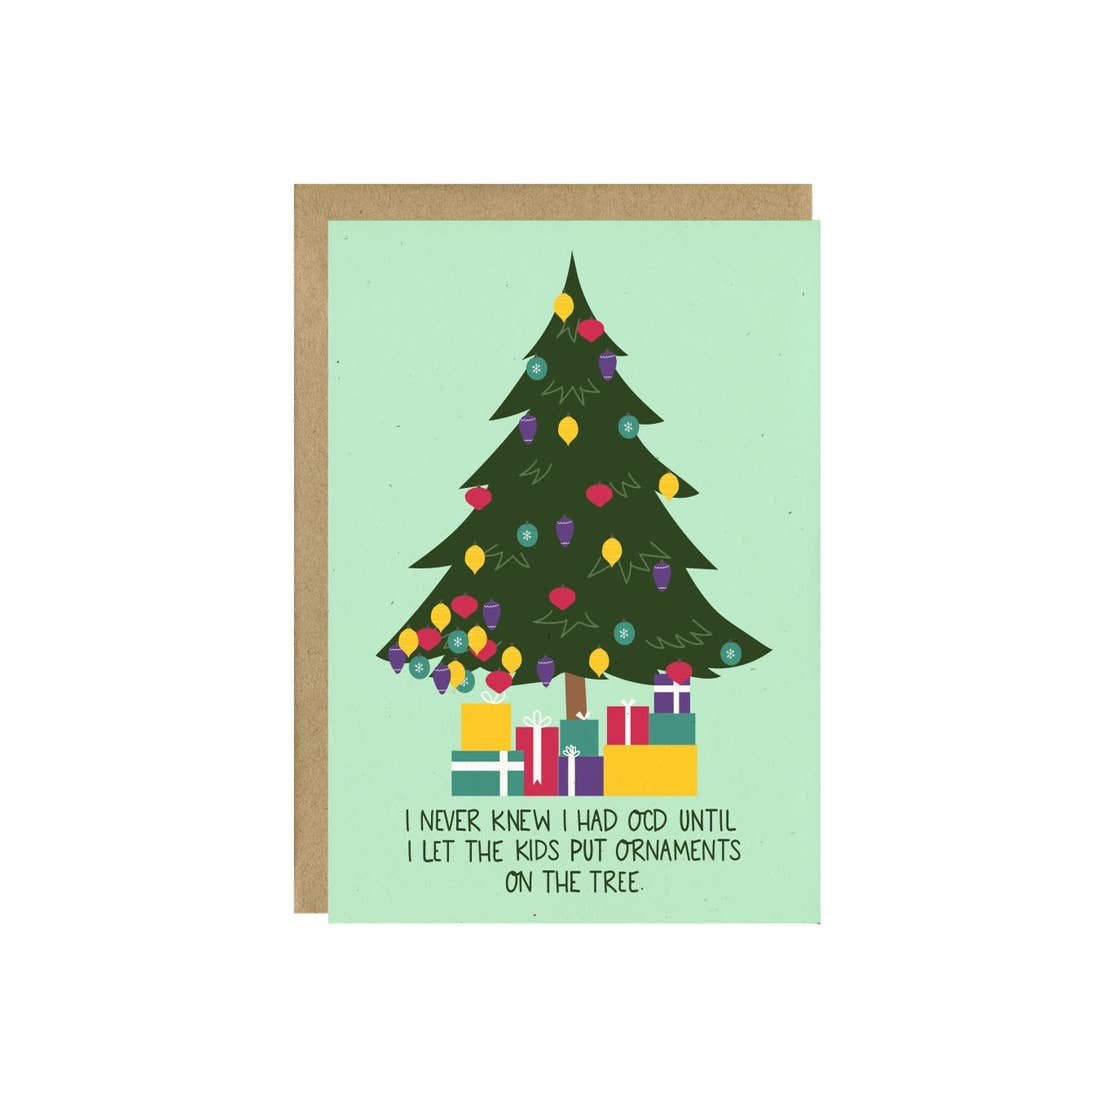 Holiday Greeting Card with Christmas tree saying